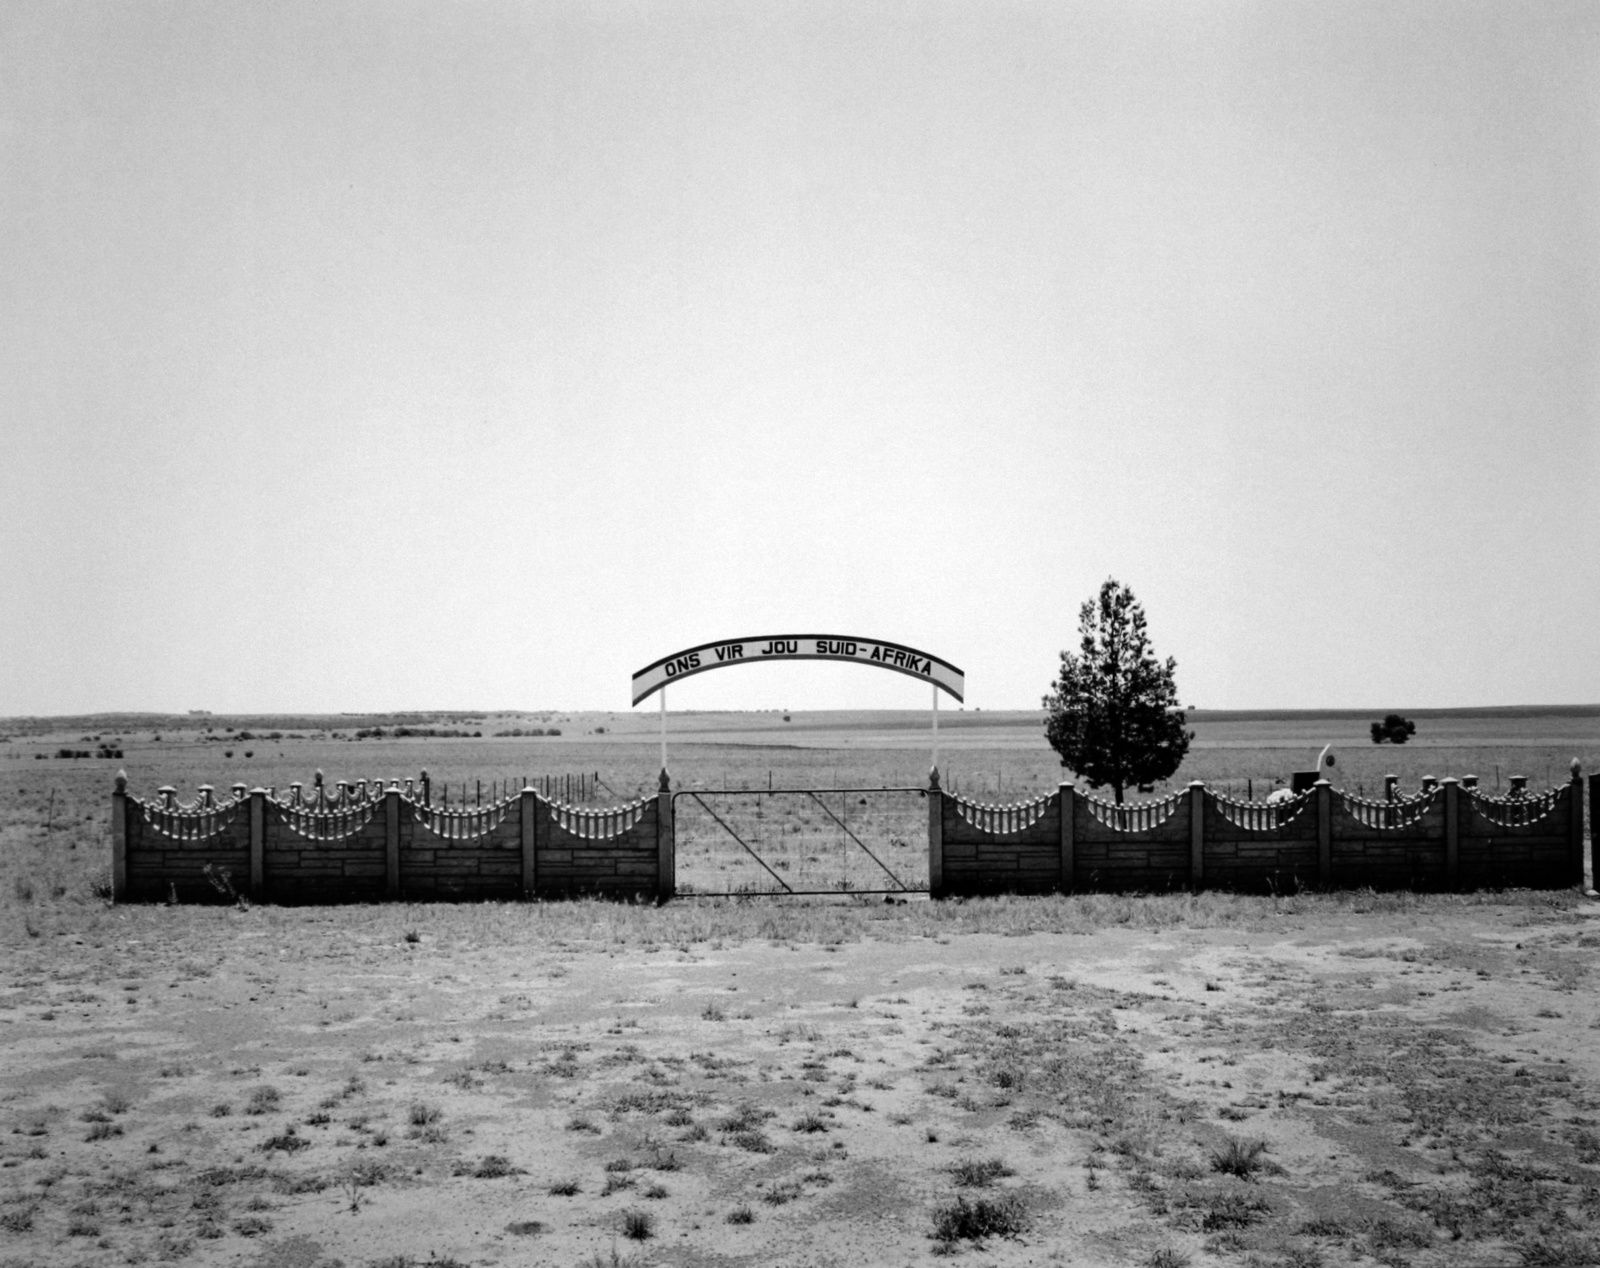 """Die heldeakker, the heroe's acre: Cemetery for white menbers of the security forces killed in ""Total Onslaught"" the war against forces in Southern Africa, Wentersdorp, Transvaal"", 1/11/1986 David Goldblatt. Courtesy of the artist and Marian Goodman Gallery, ParisDavis Goldblatt, Courtesy of the artist and Marian Goodman Gallery, Paris"